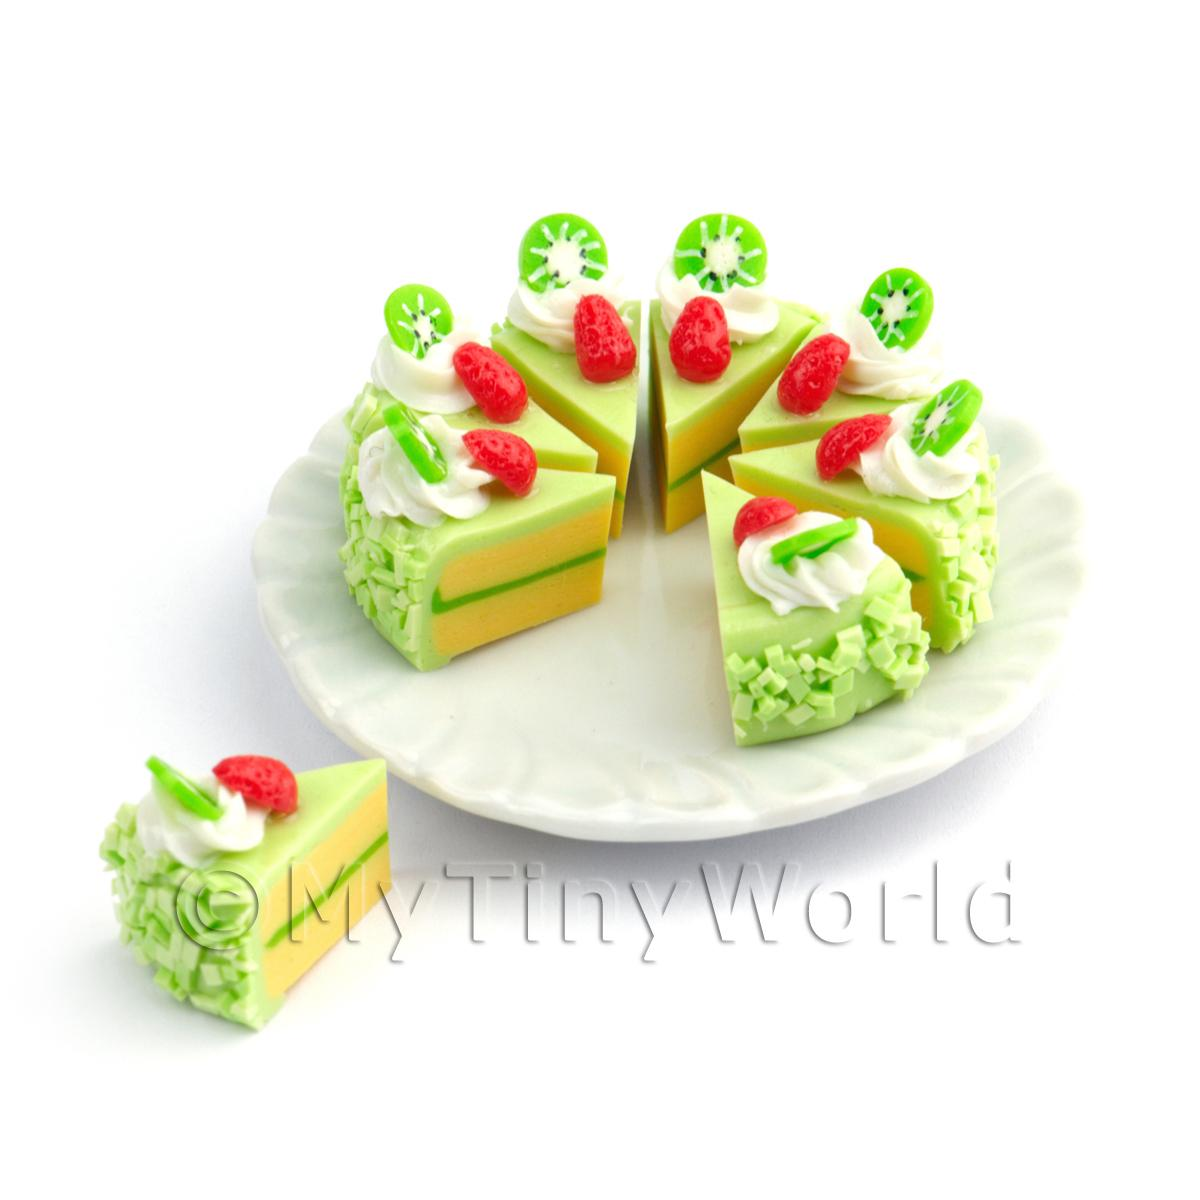 Miniature Whole Sliced Green Iced Kiwi Cake